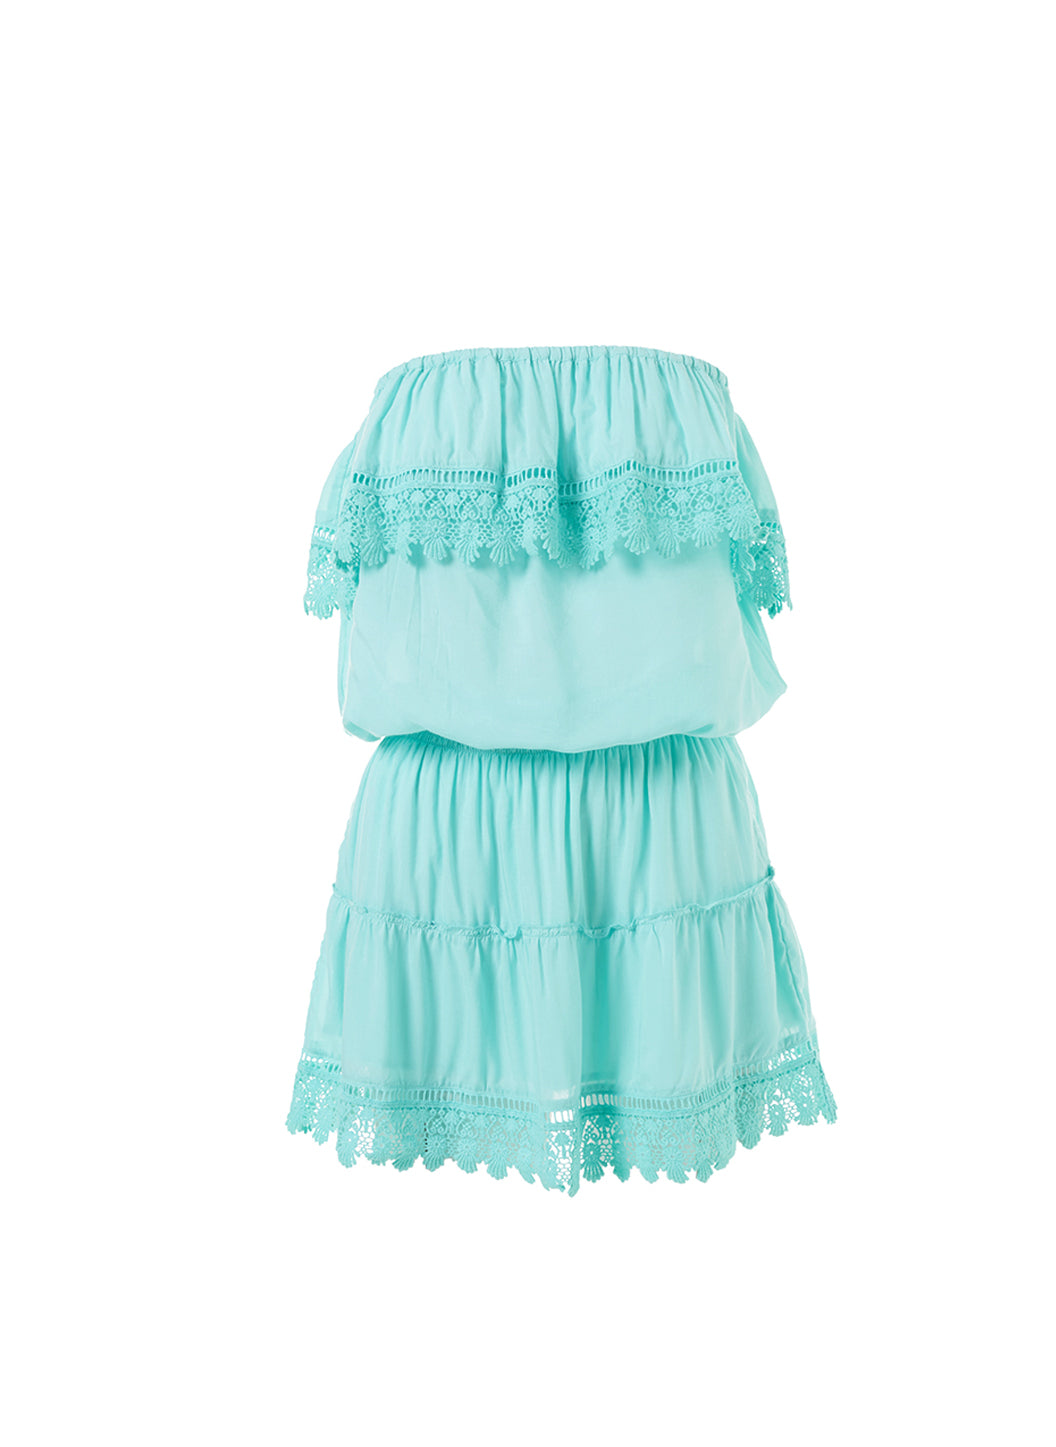 Joy Sky Bandeau Embroidered Frill Short Dress - Melissa Odabash Dresses & Kaftans